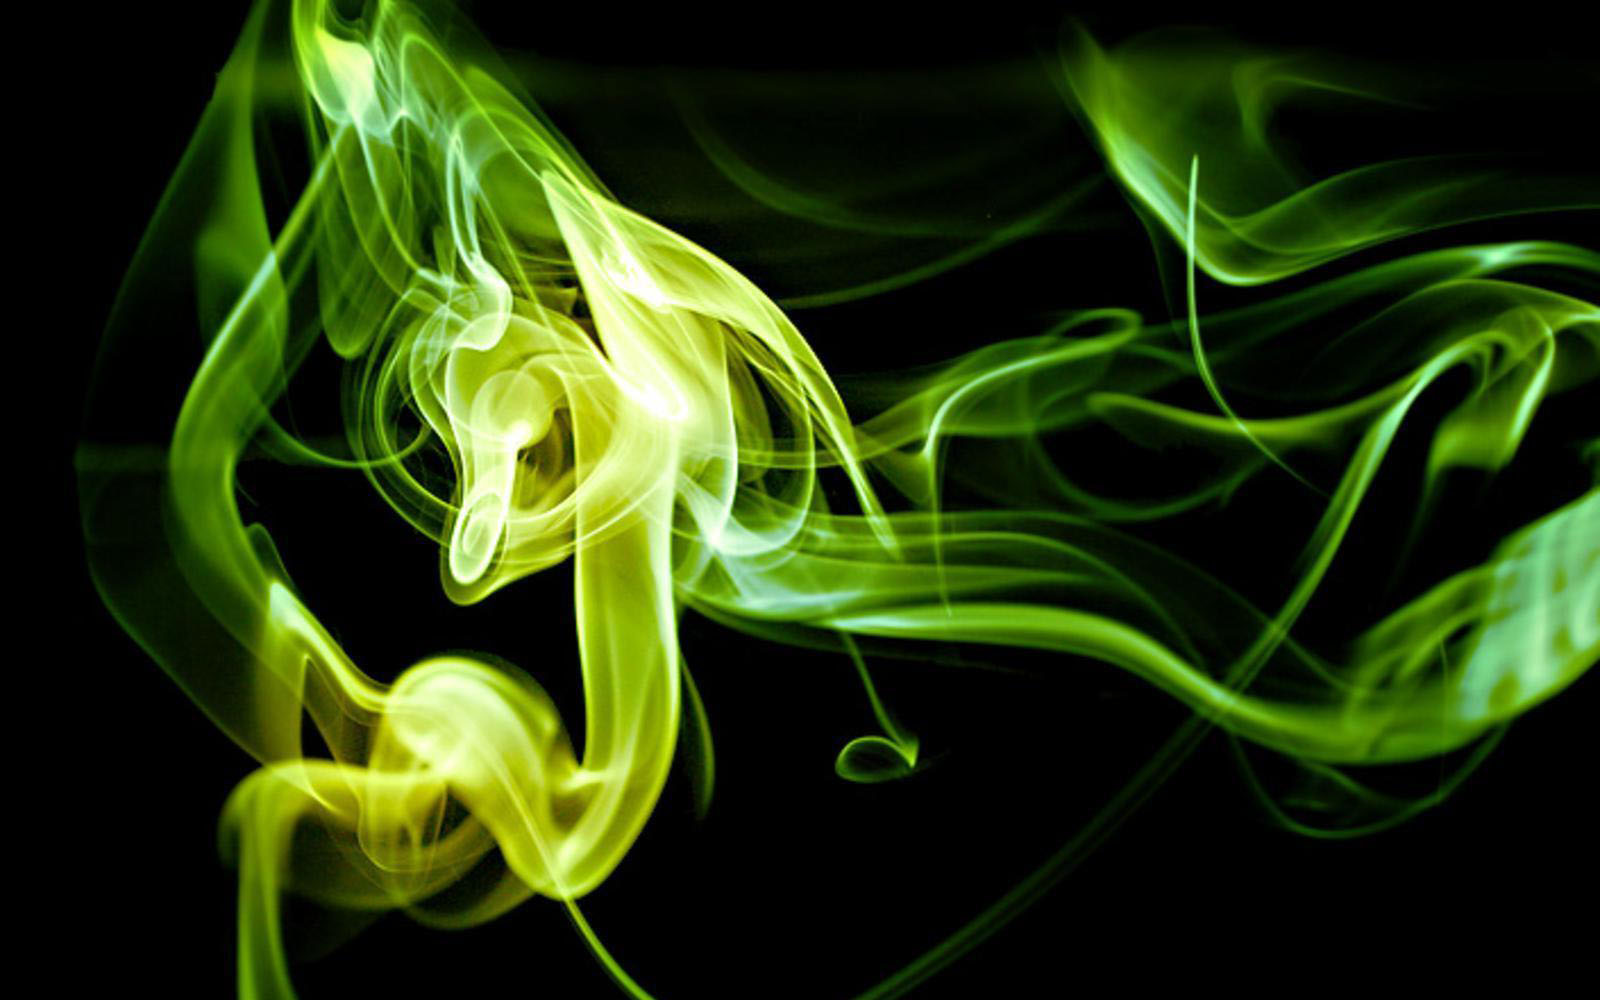 wallpapers Abstract Smoke Wallpapers 1600x1000